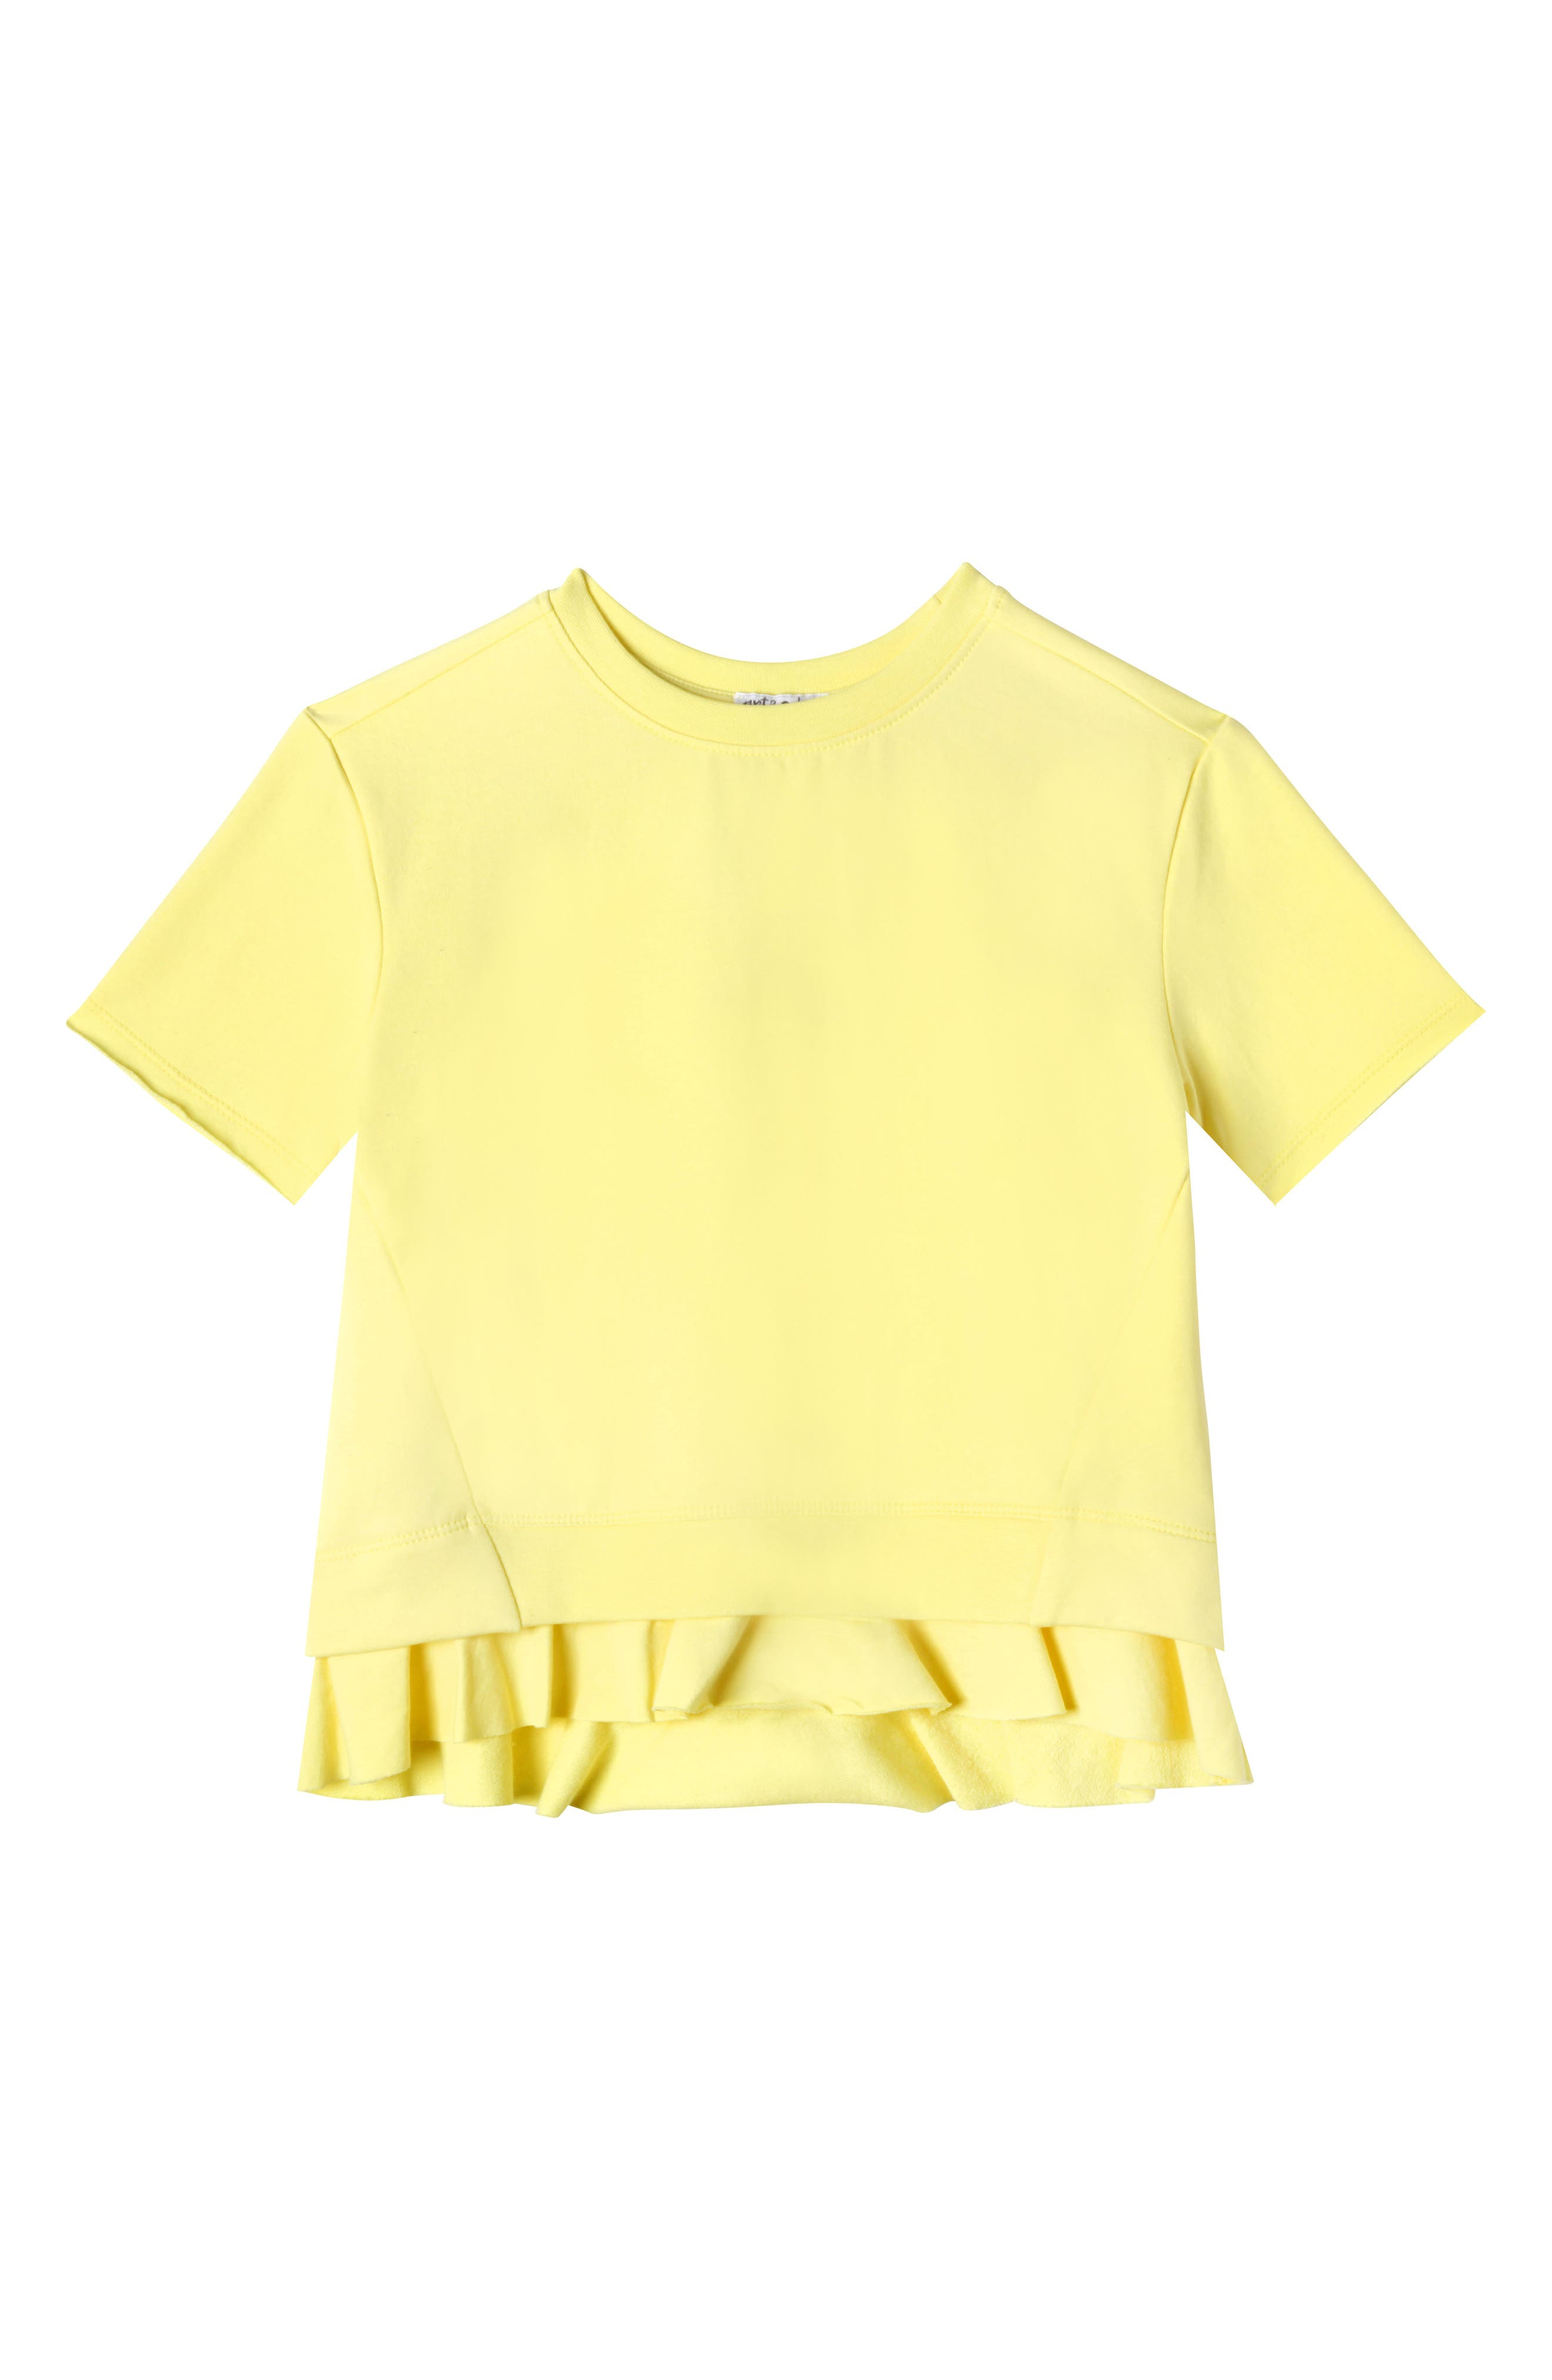 Art & Eden Ruffle Pullover (Toddler Girls & Little Girls)